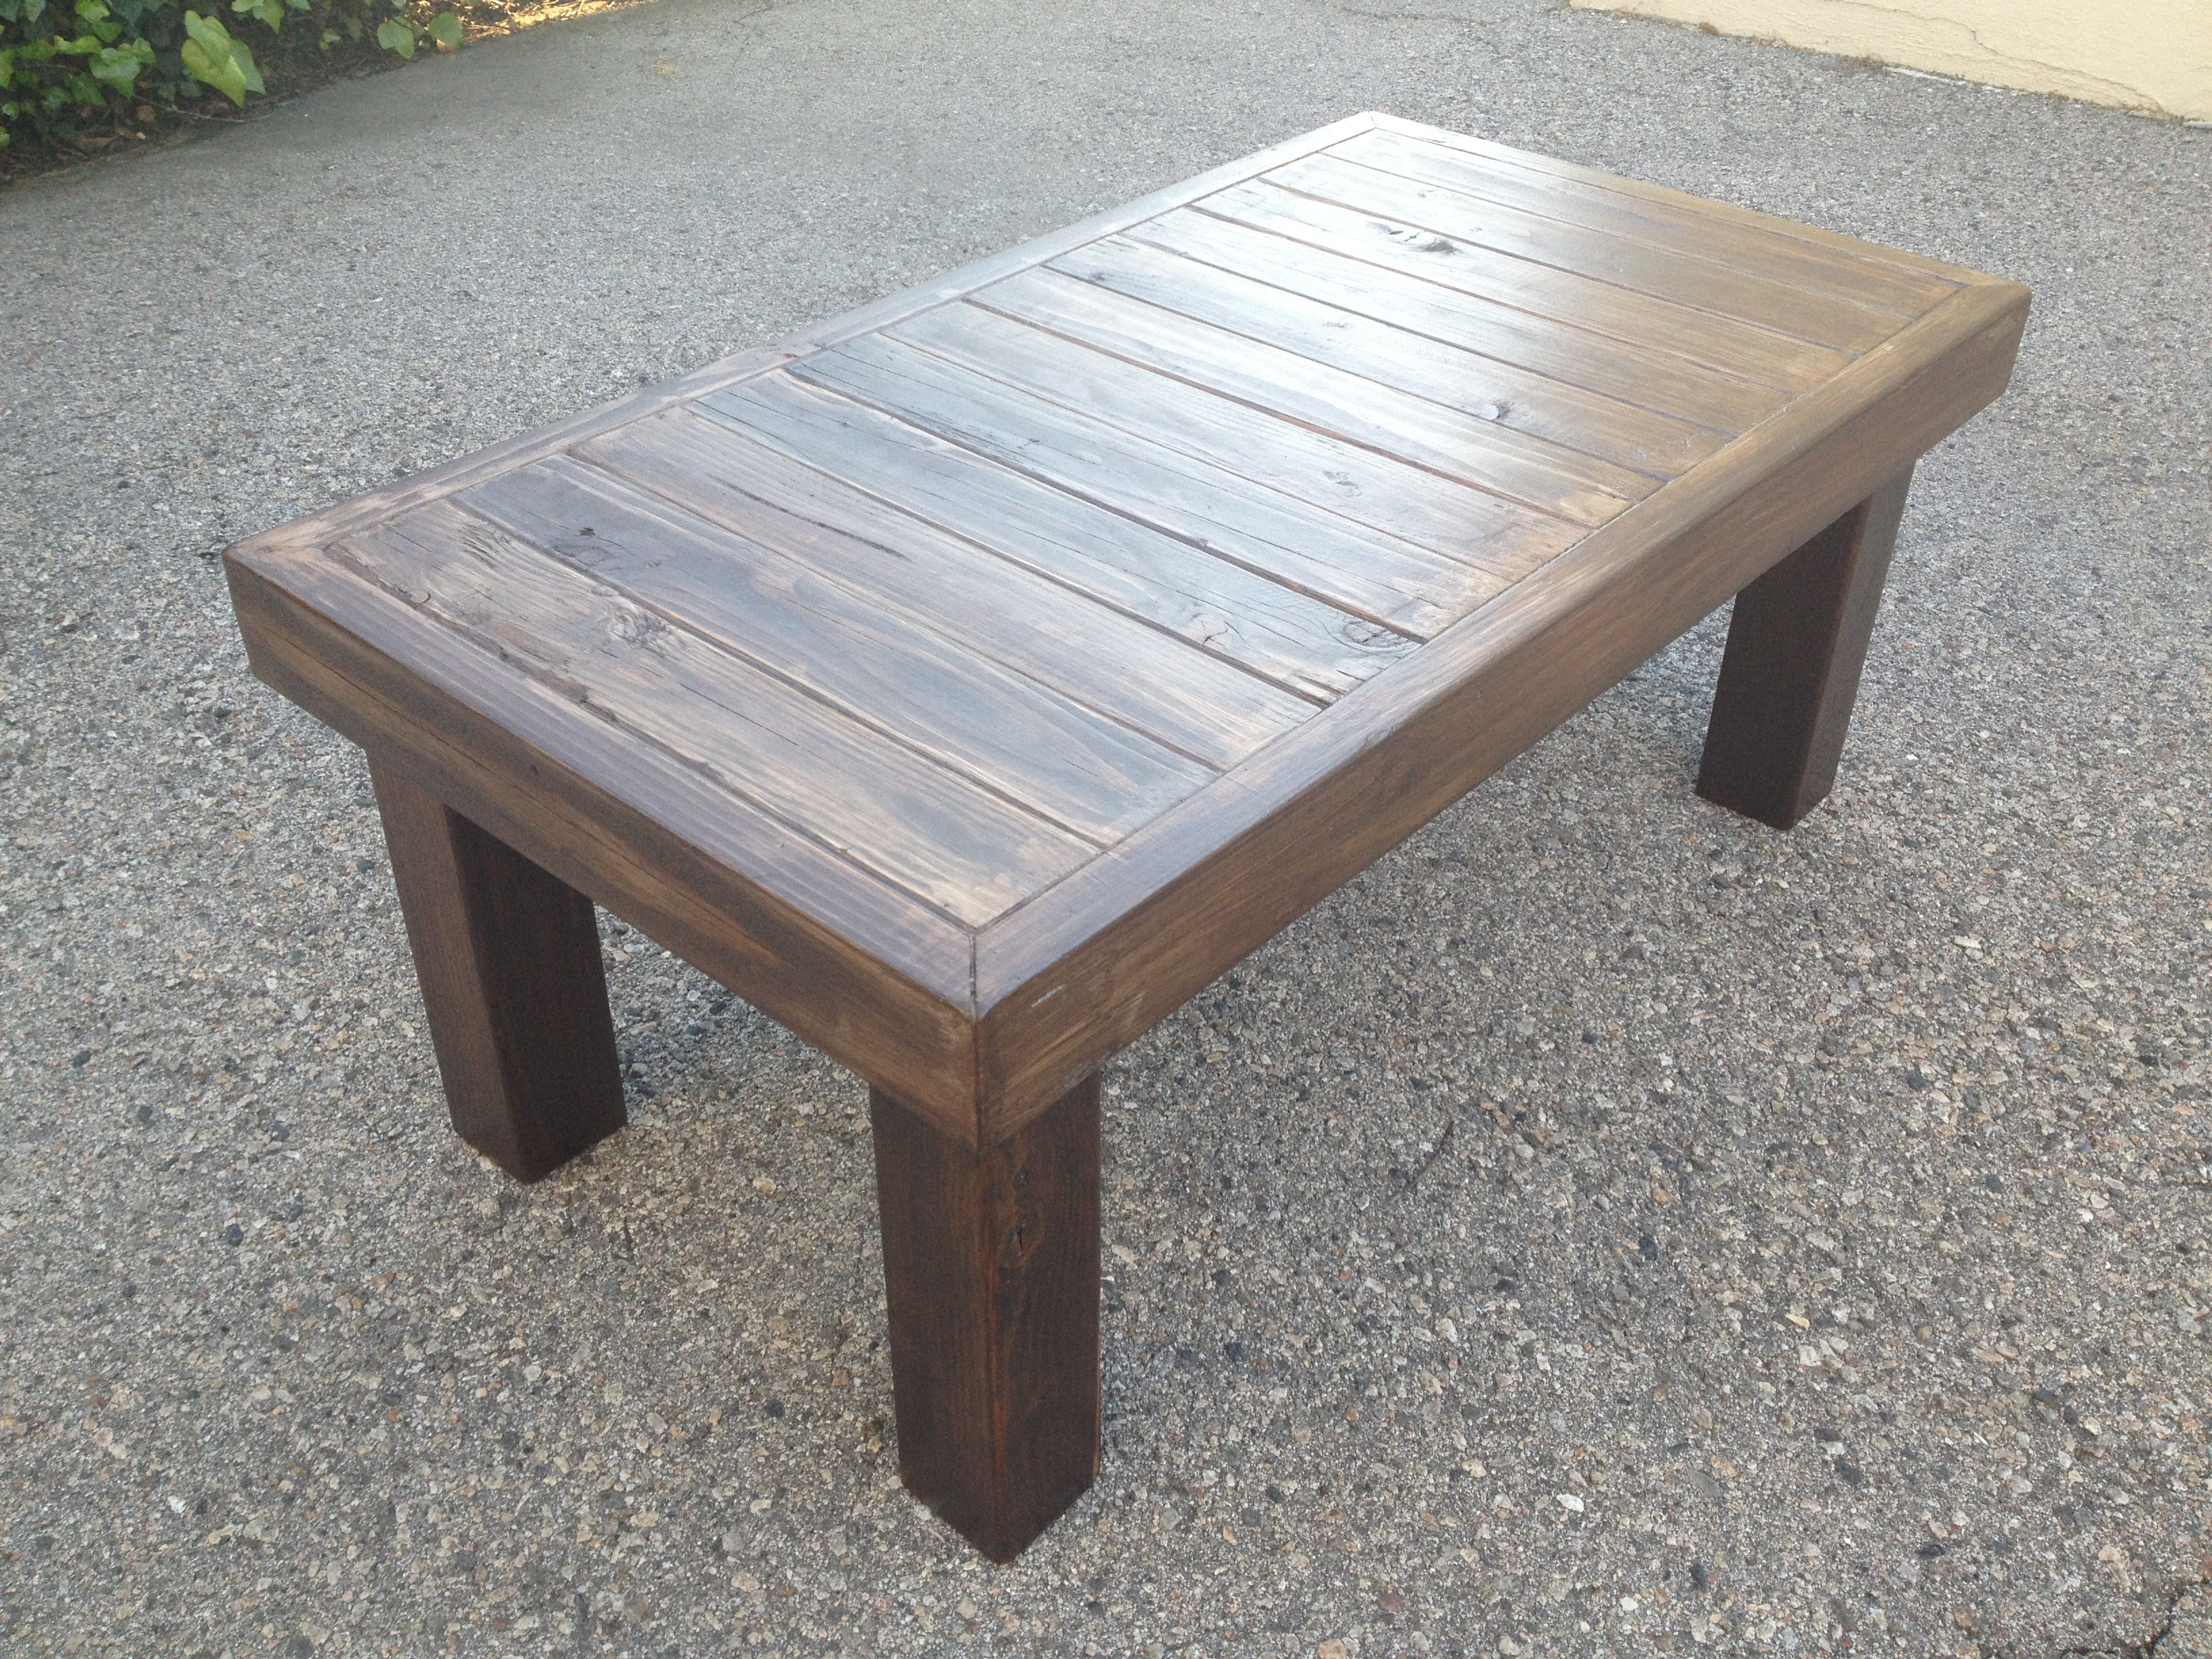 Best ideas about DIY Wood Table . Save or Pin PDF Wooden coffee table instructions DIY Free Plans Now.